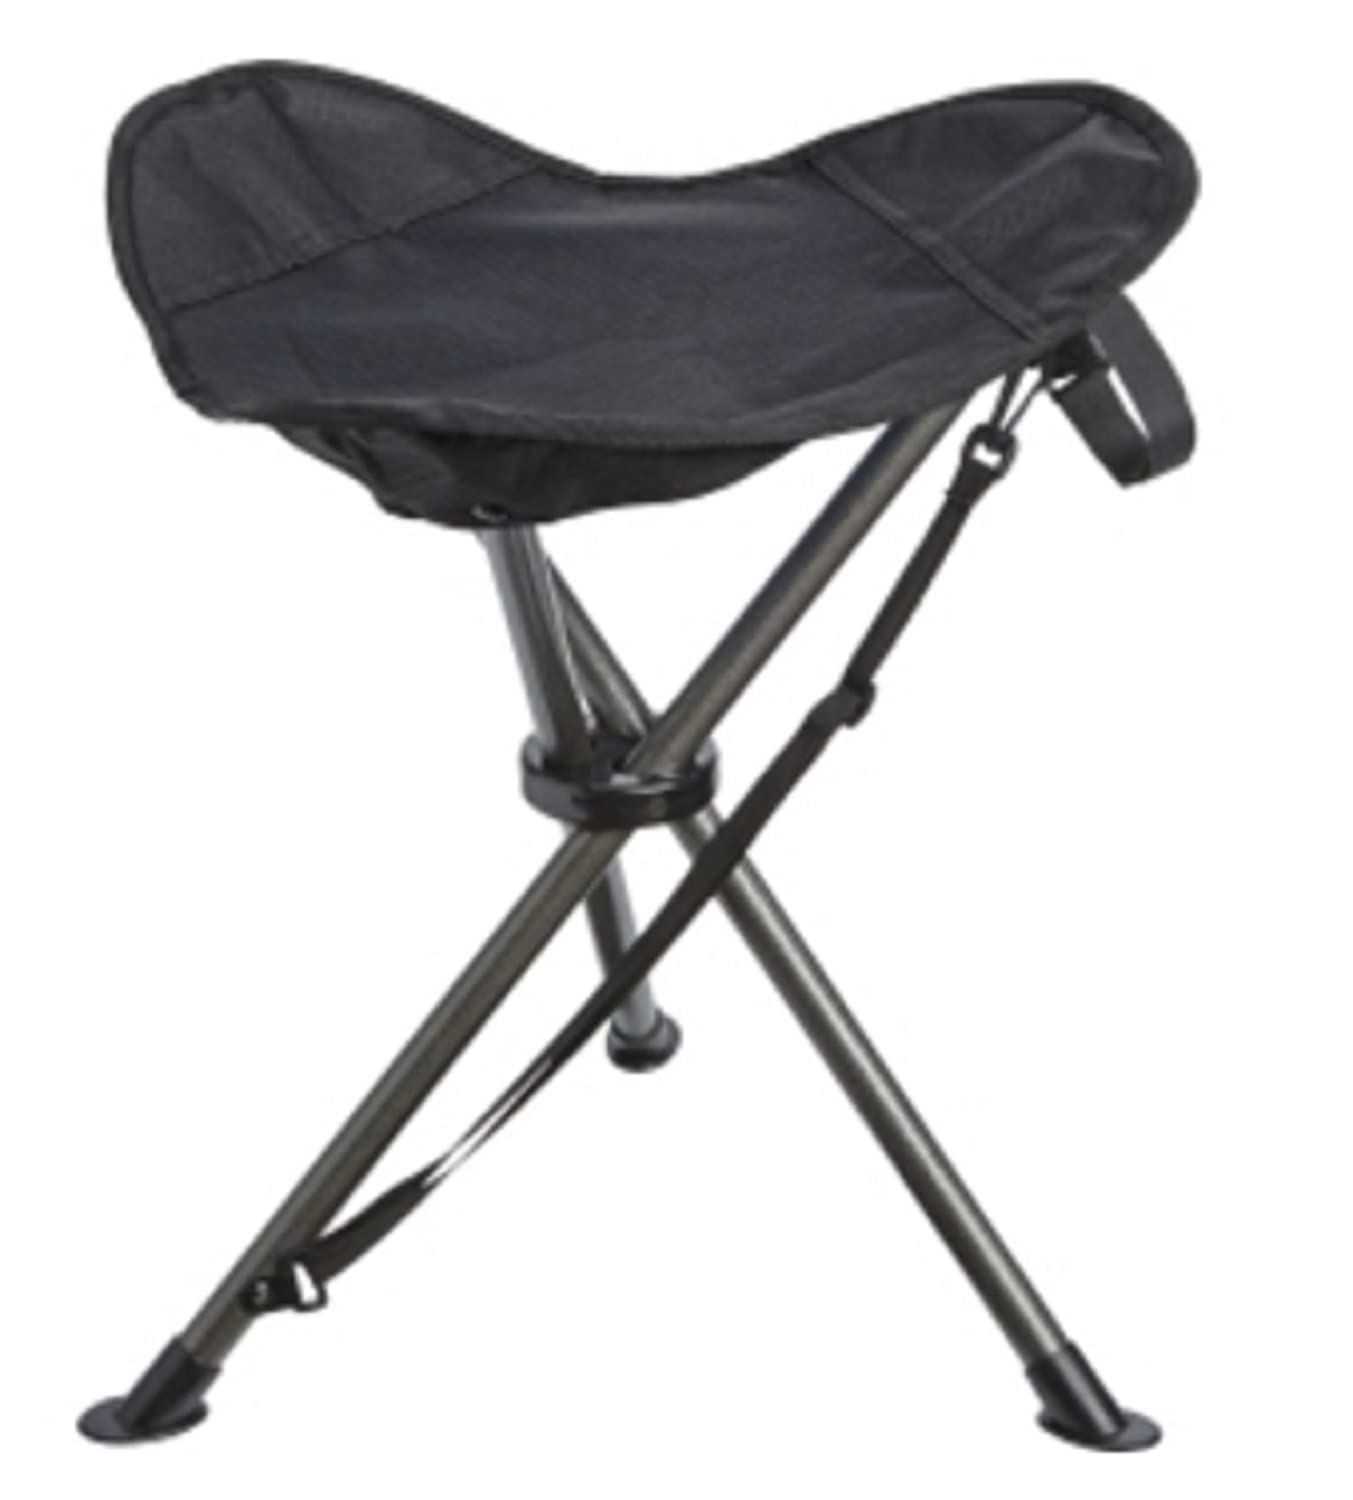 Amazon.com : Quest Folding Stool Portable For Camping, Sporting Events, Or  Back Yard (Black) : Sports U0026 Outdoors